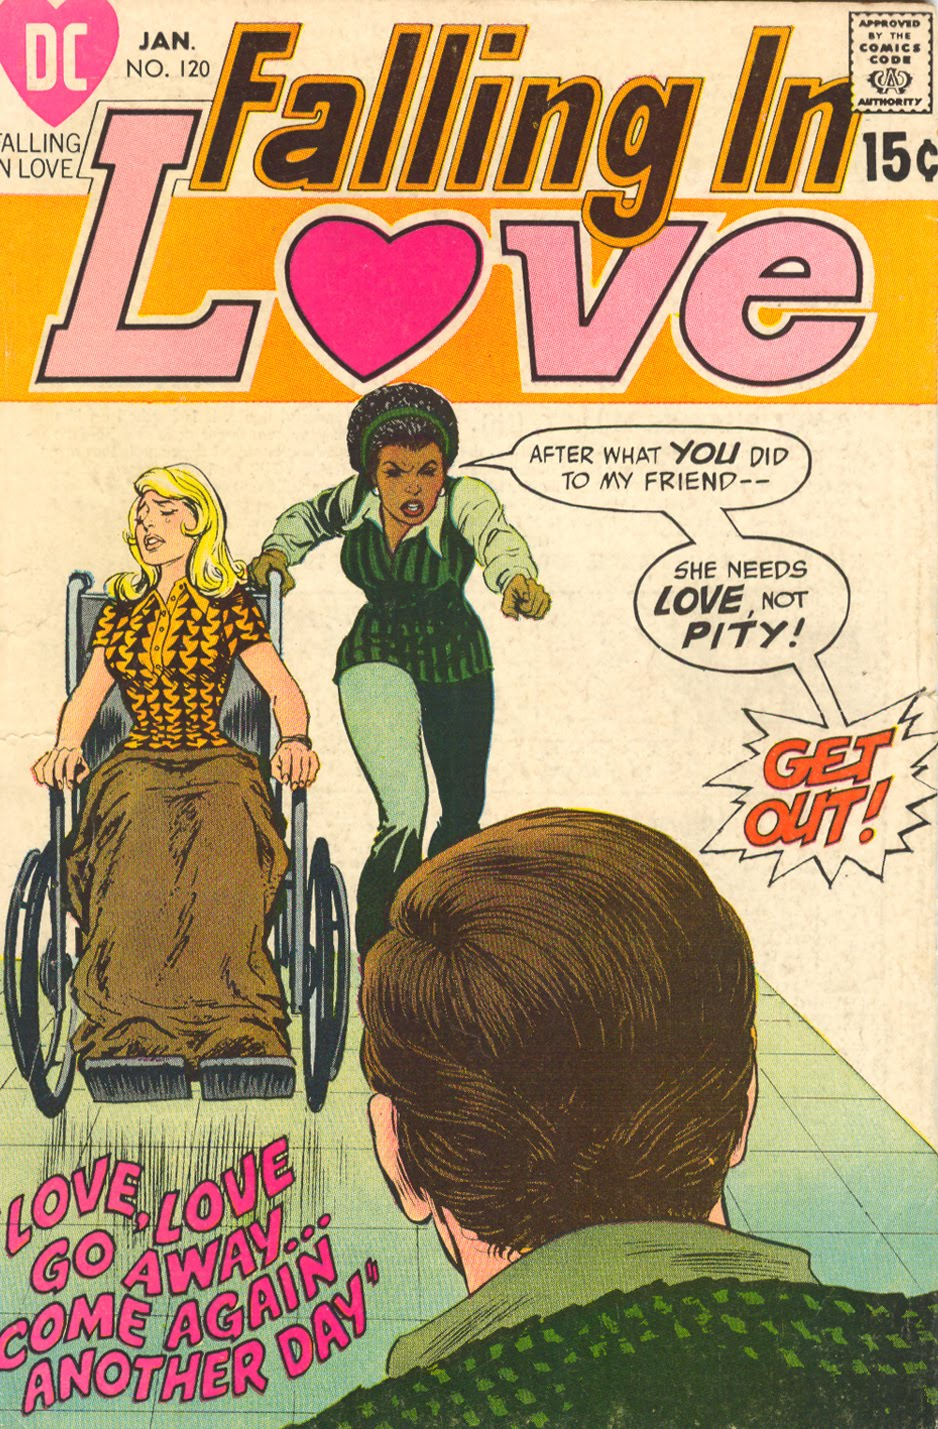 """DIAGNOSIS: Broken leg due to falling off porch """"Love, Love Go Away... Come Again Another Day""""  Falling in Love  #120 (January 1971) Cover pencils and inks by Nick Cardy"""